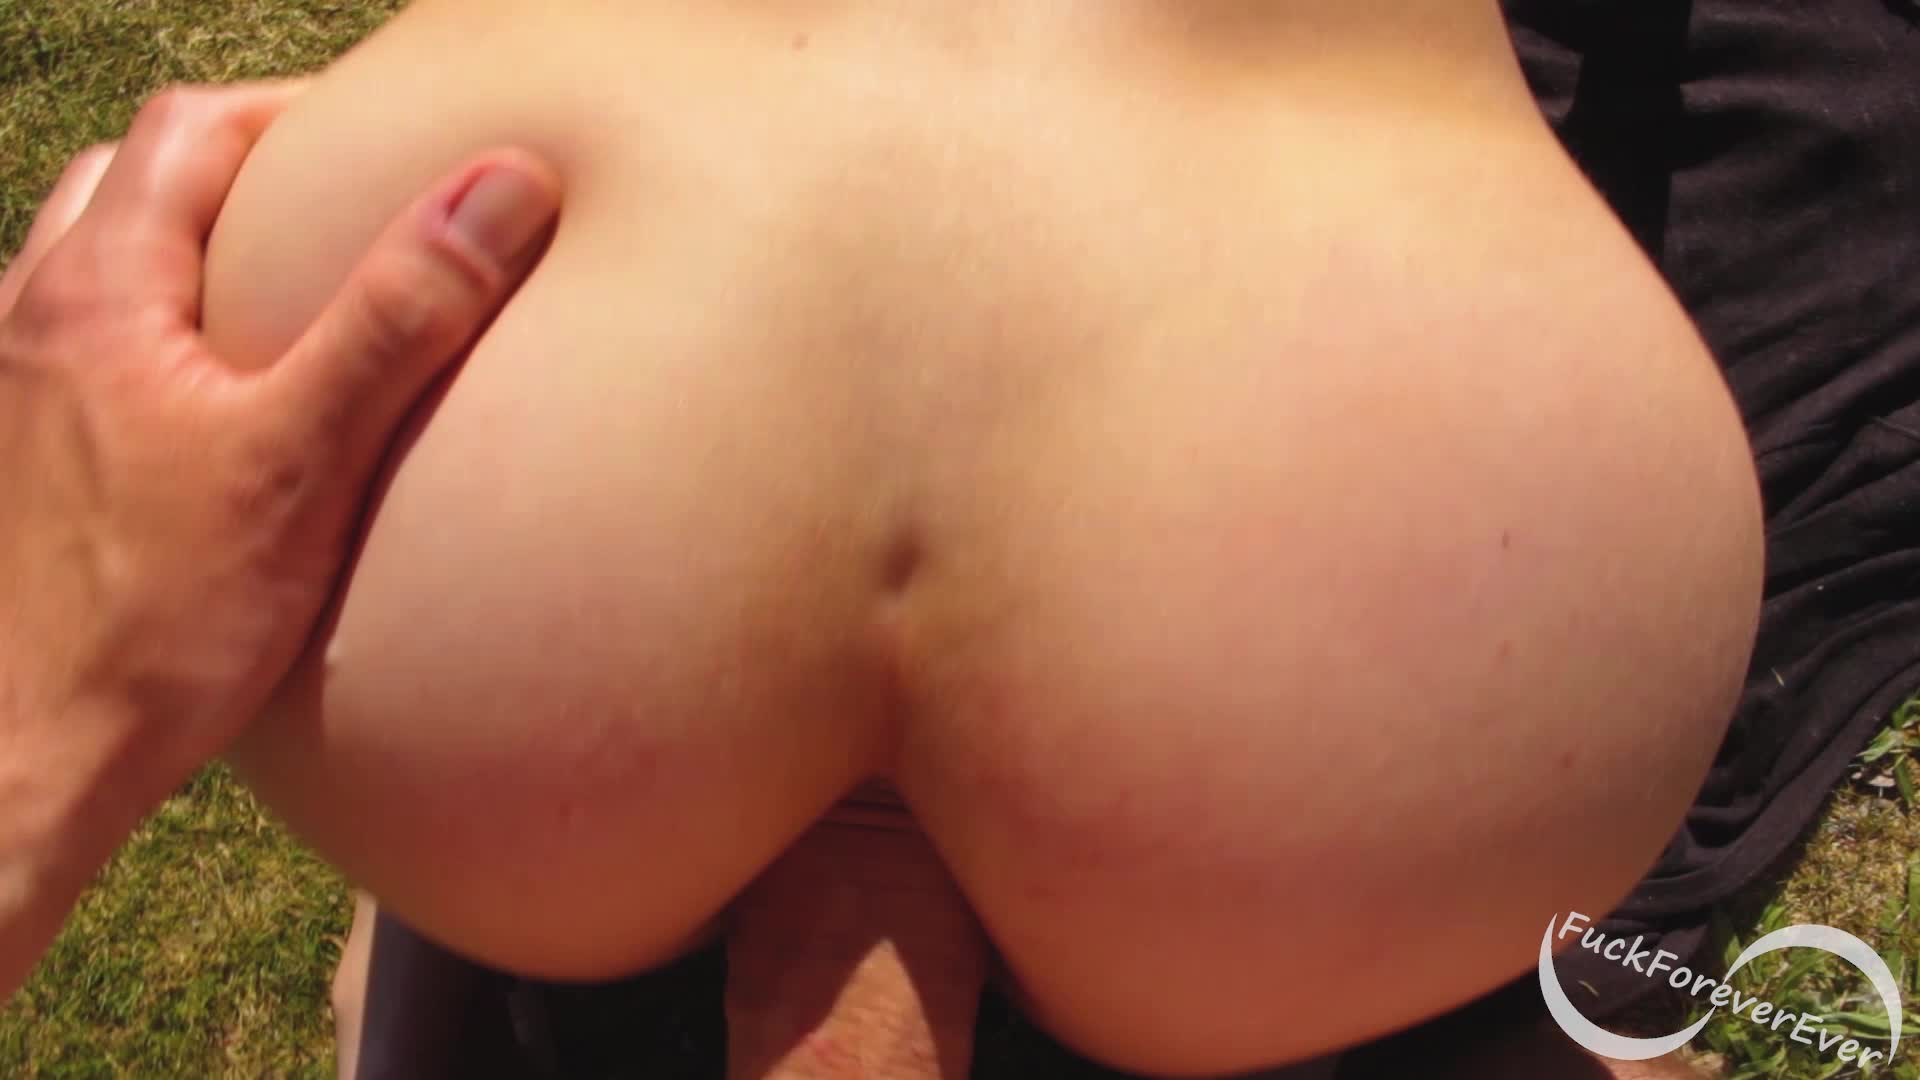 Anal sex outdoors